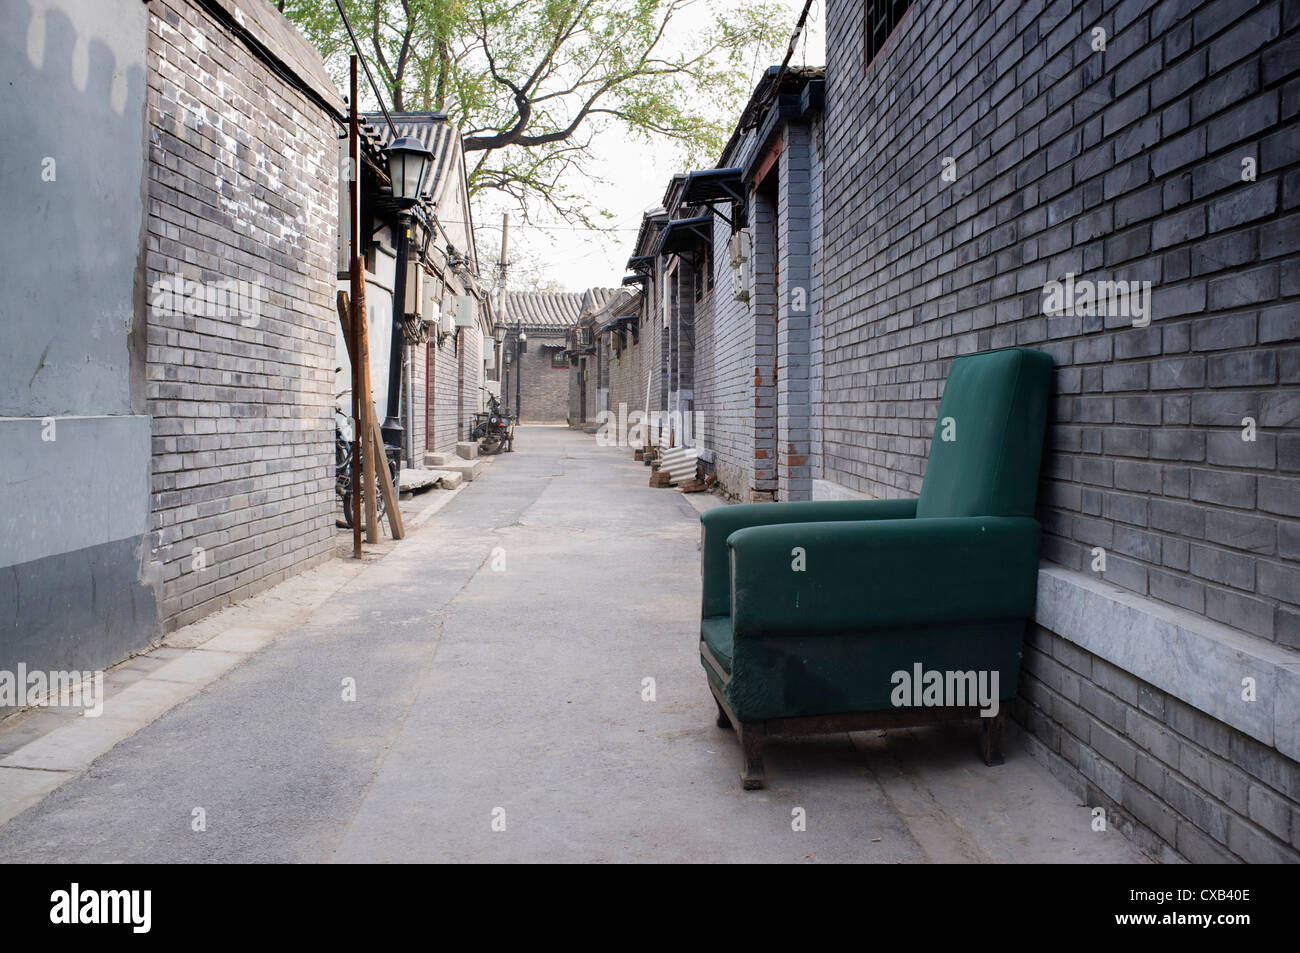 Green chair in empty hutong or lane in Beijing china - Stock Image